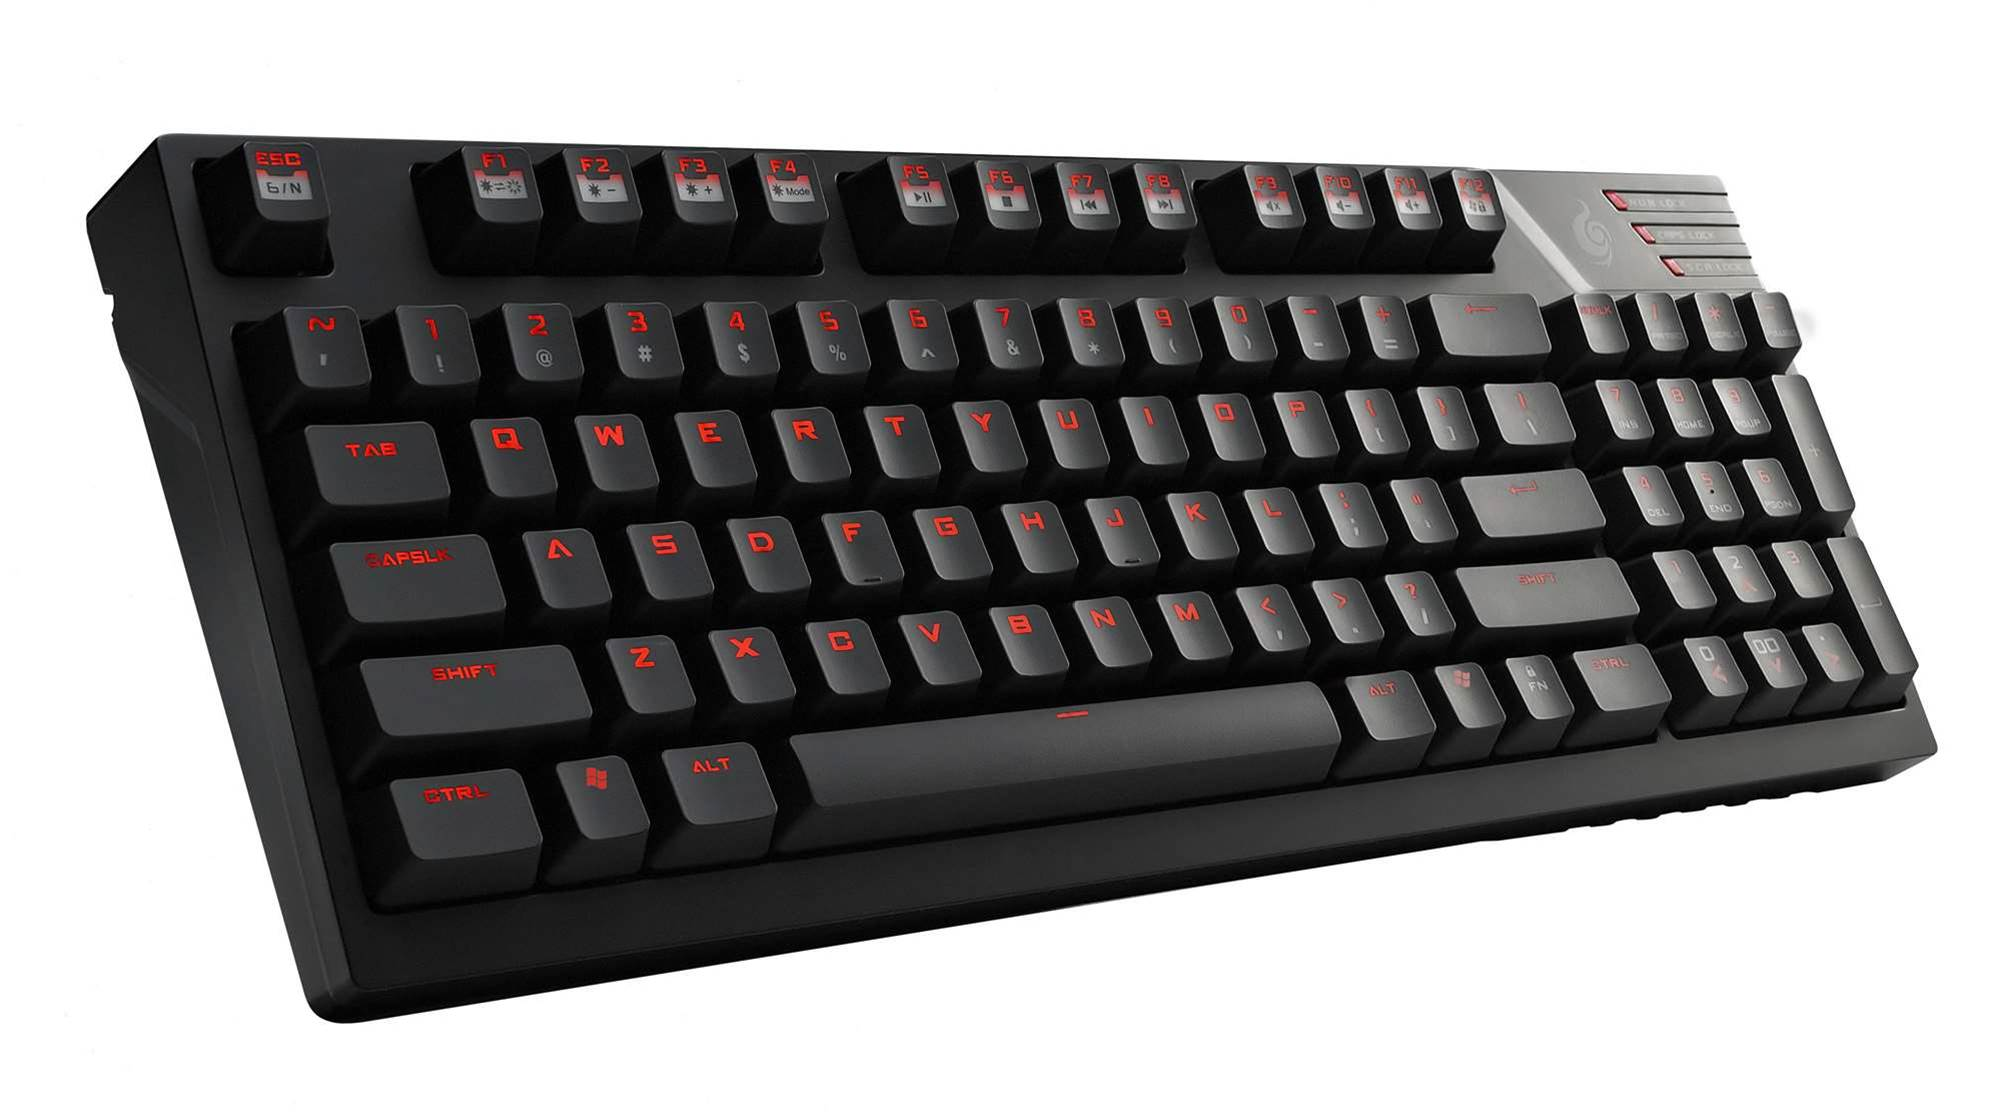 Coolermaster launches stupidly named gaming product